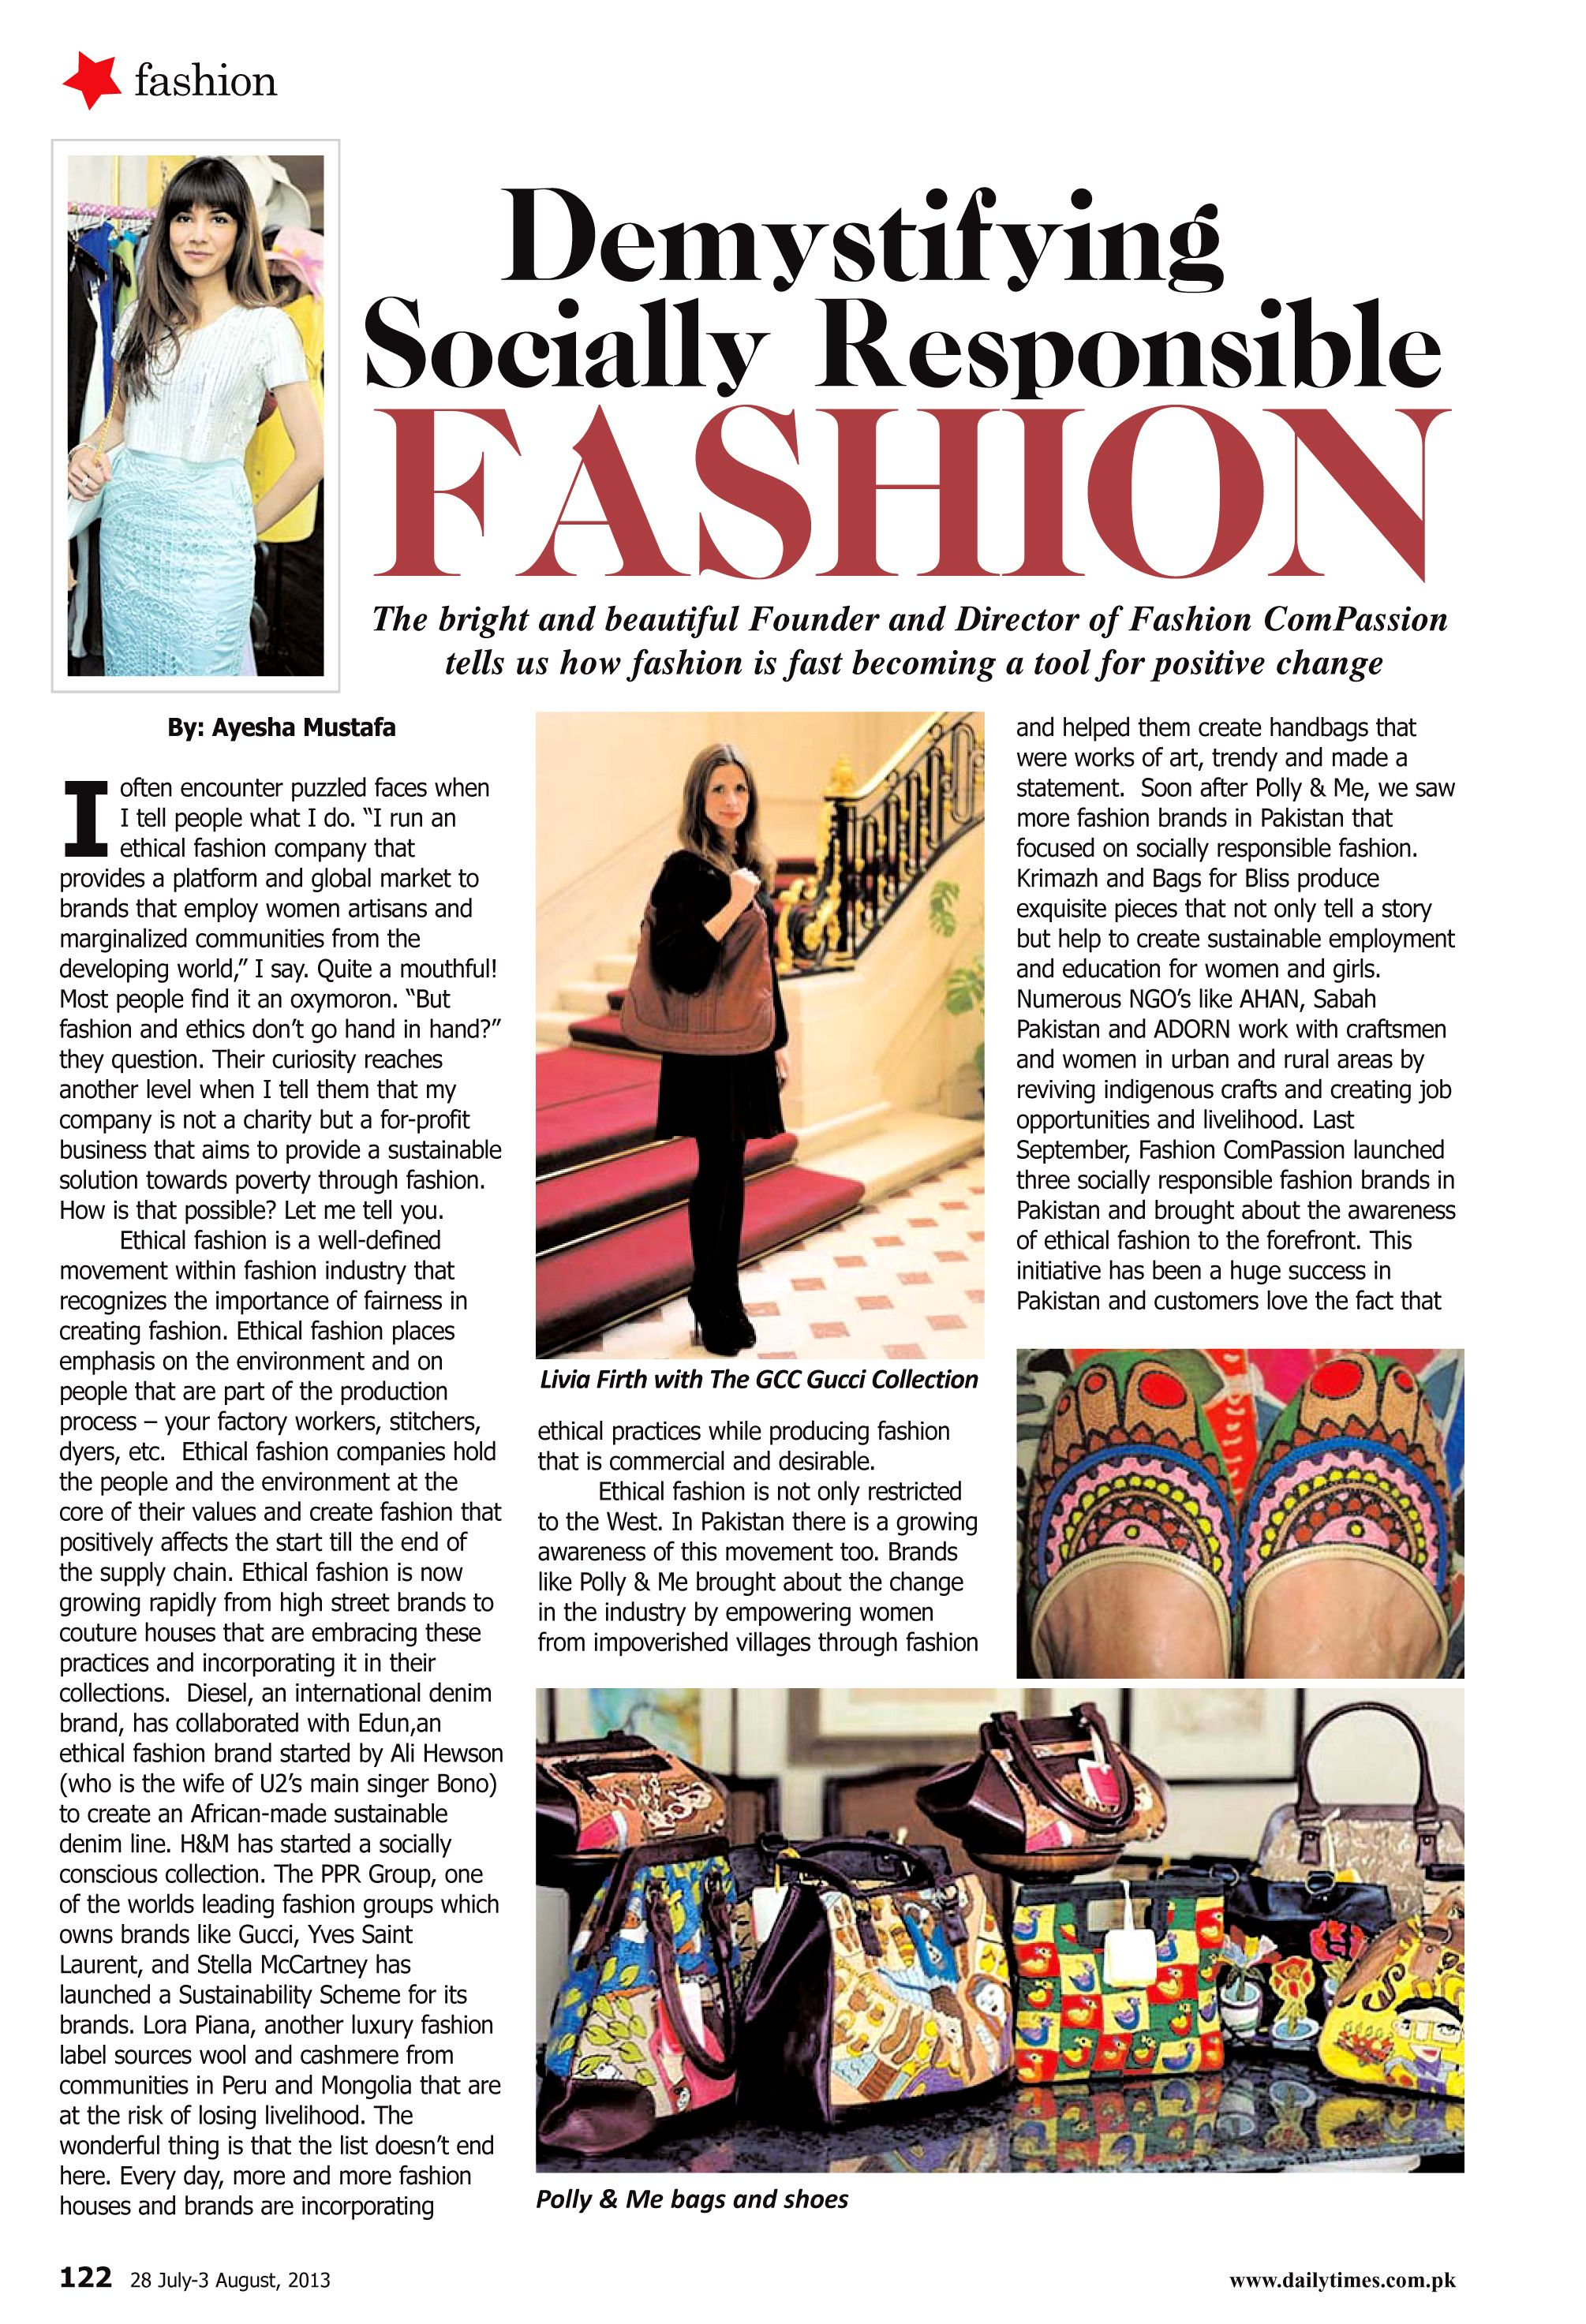 Fashion Compassion Article - Demystifying Socially ...